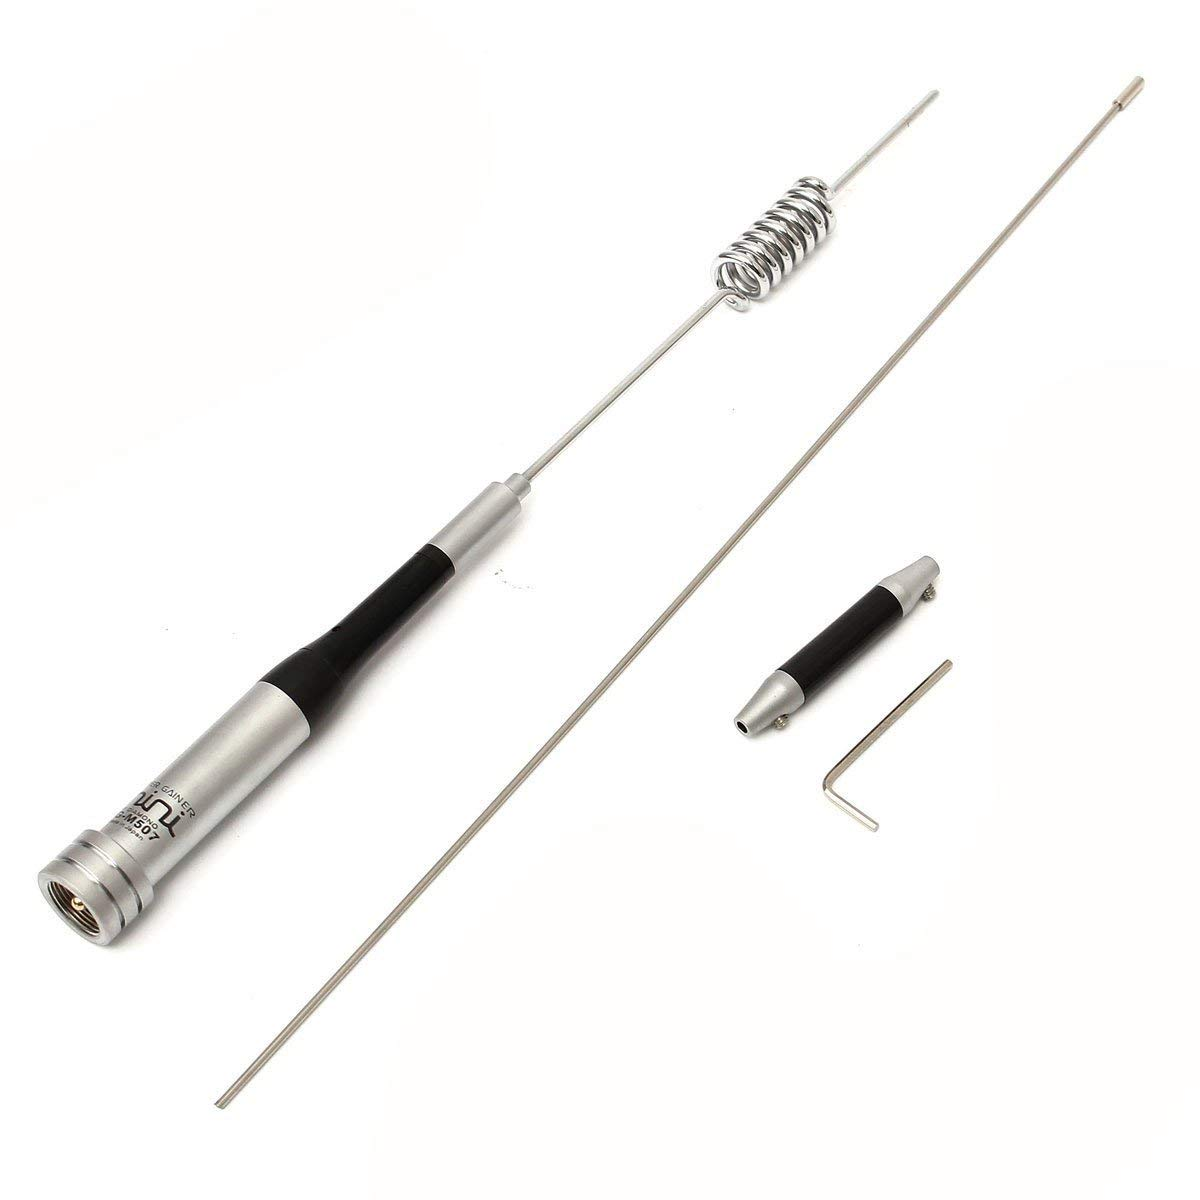 Cheap 144 Antenna, find 144 Antenna deals on line at Alibaba com